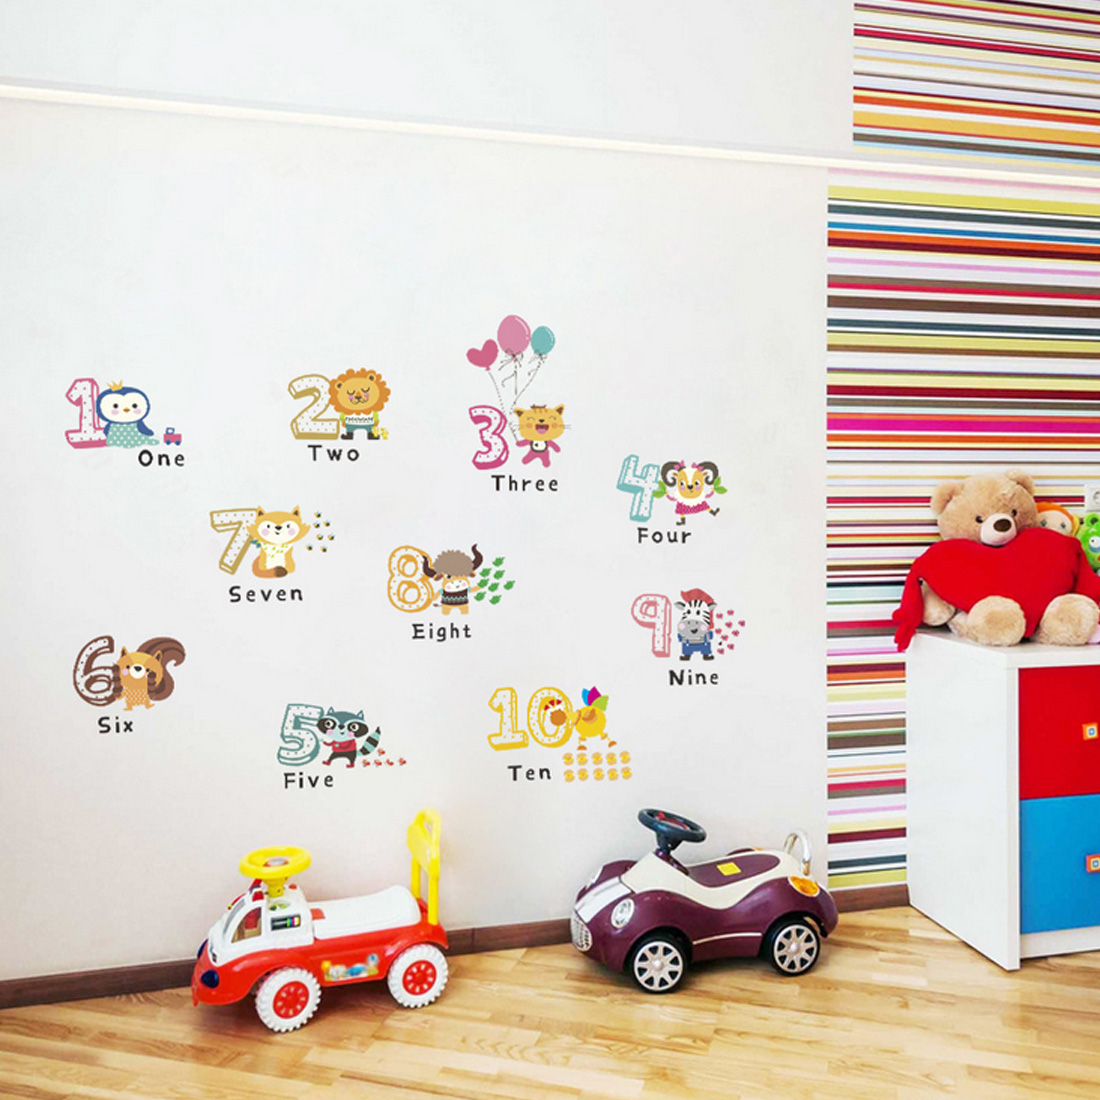 Lovely Animals Number Wall Stickers For Kids Room Home Decoration Removable Environmental Cartoon Animals Wall Decals Mural Art